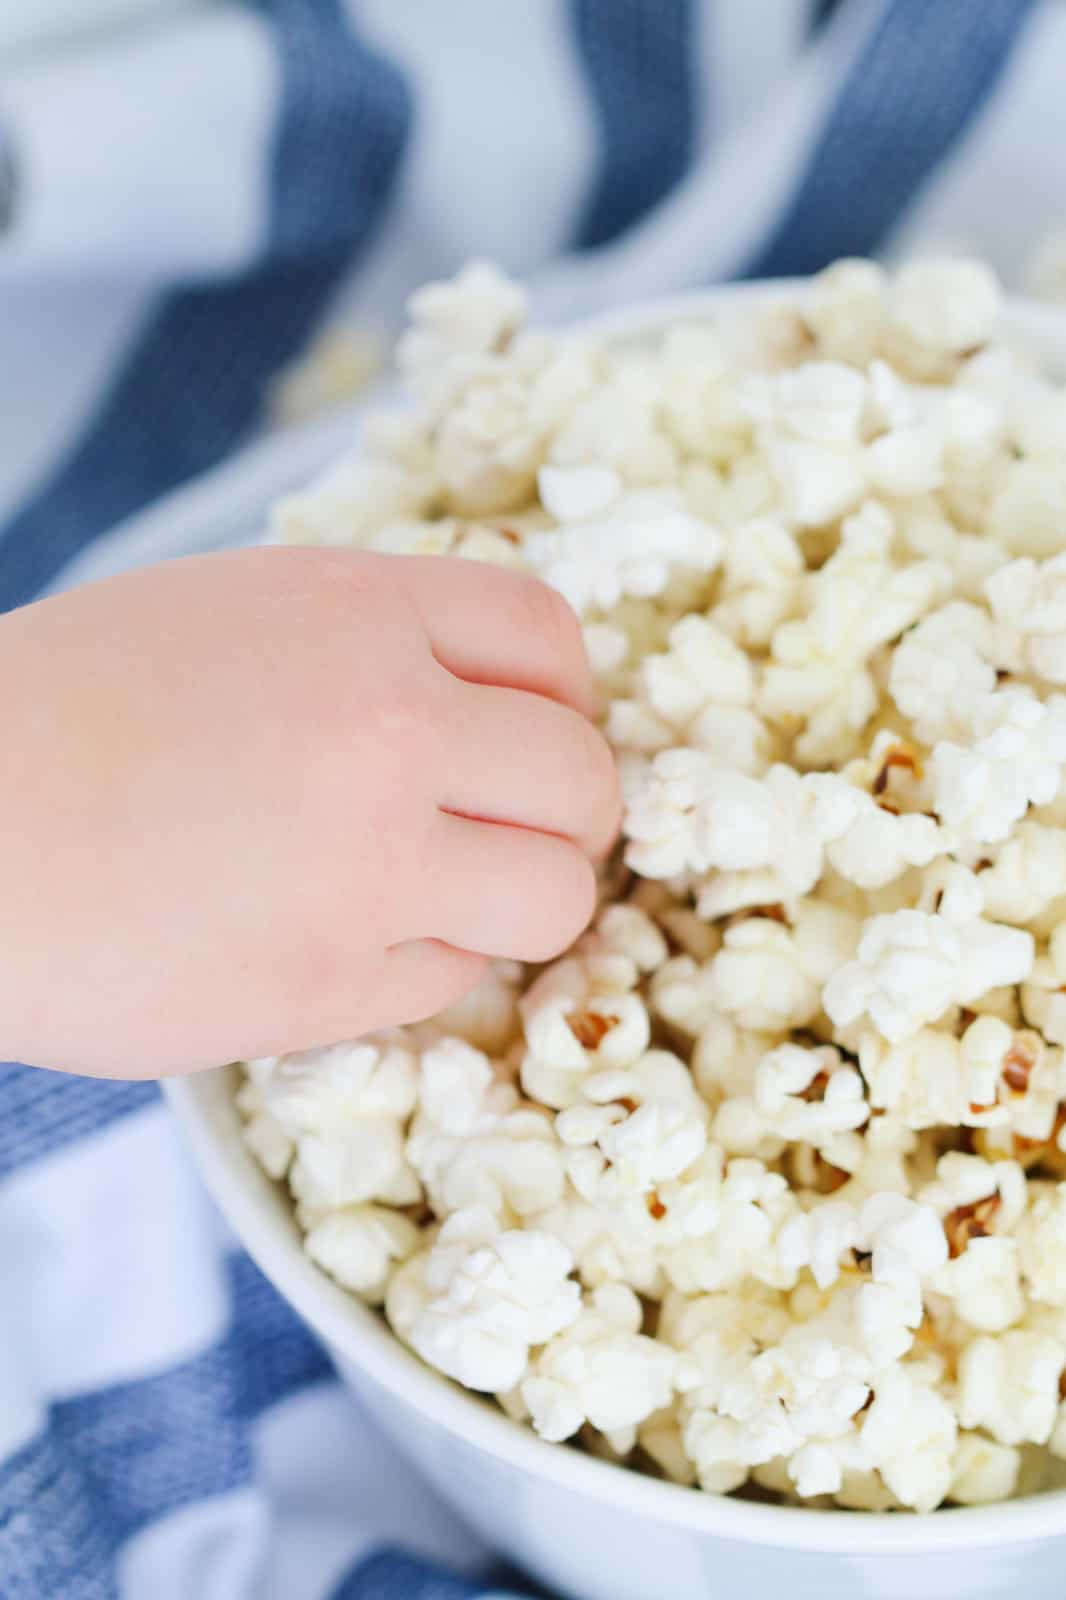 A child's hand reaching into a bowl of popcorn.